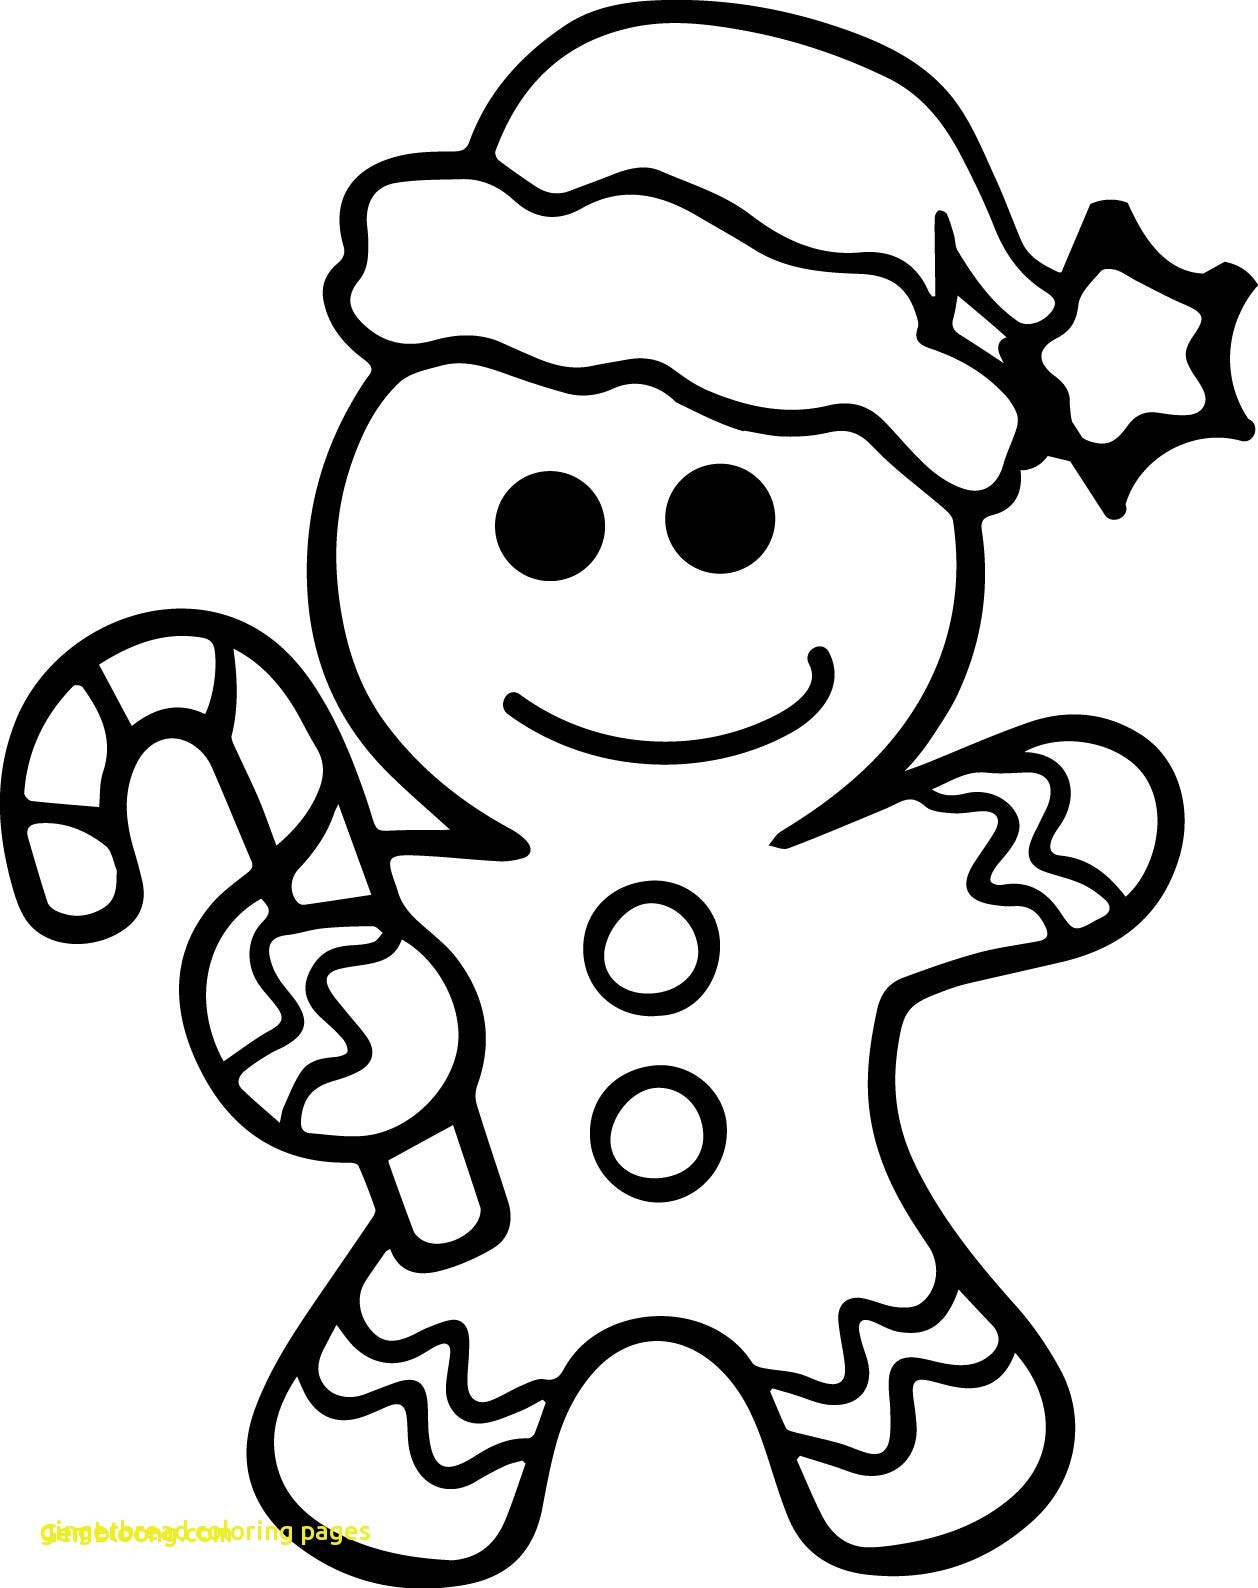 1258x1588 Gingerbread Man Coloring Pages Thatswhatsup